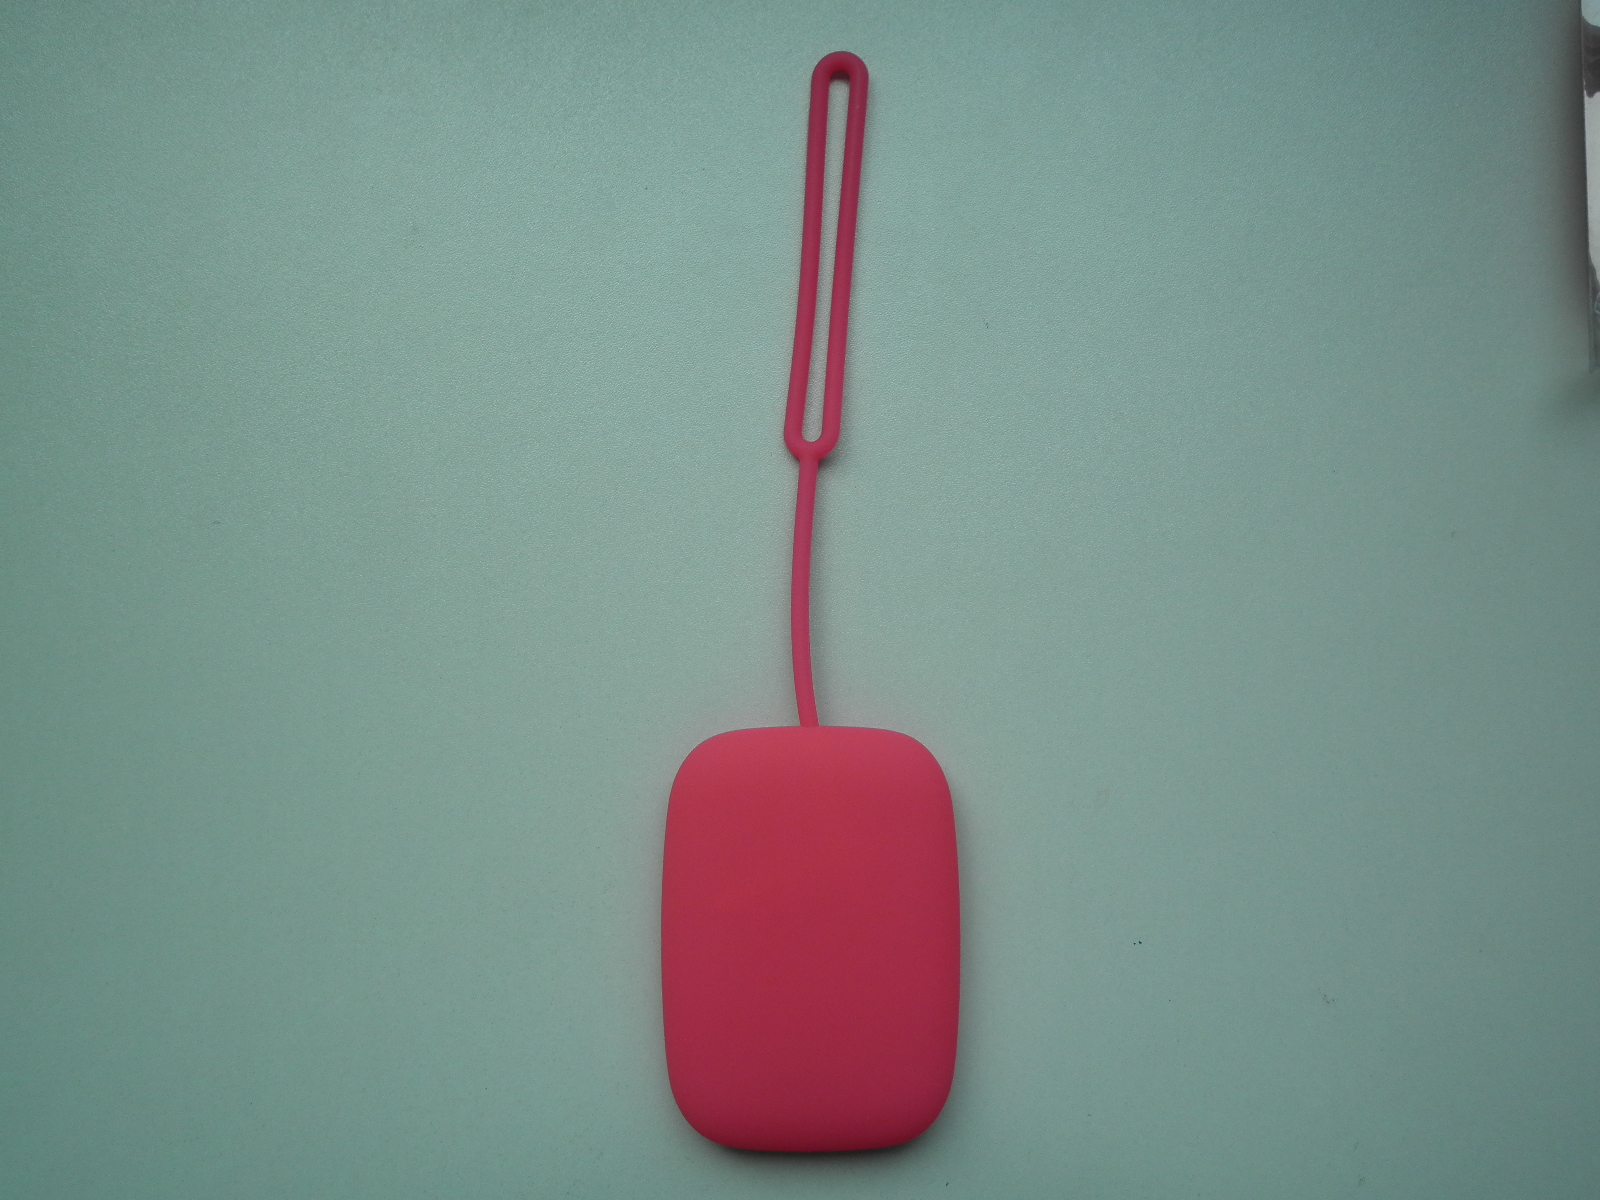 http://www.refinehksilicone.cn/data/images/product/20180418101643_181.JPG